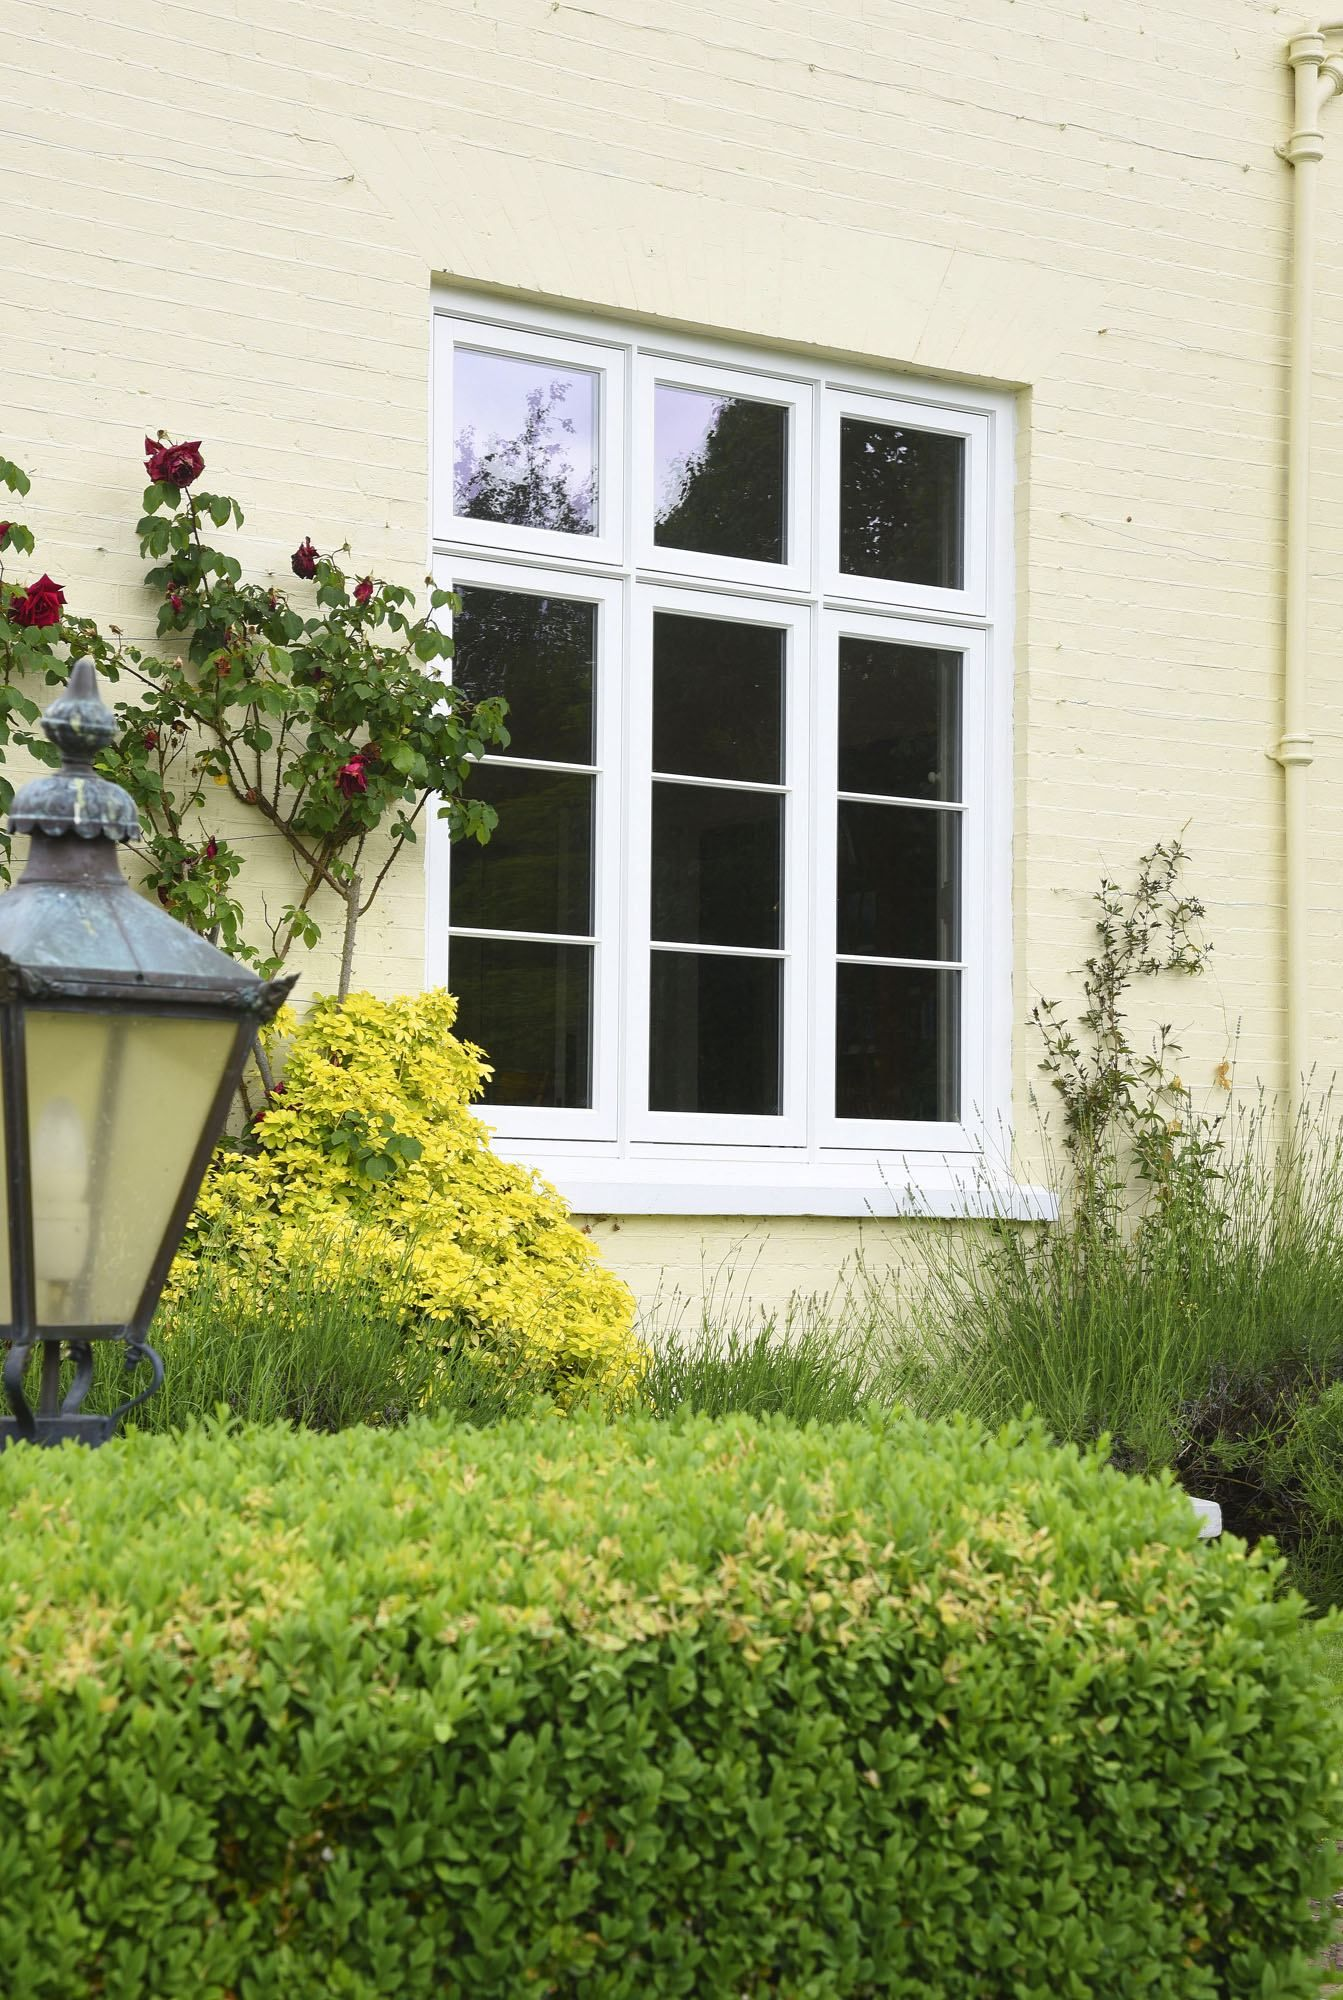 Beautiful Modern And Traditional Windows Flush Casement Timber Windows All Made To Measure Using Engineered Timber And To Windows Casement Windows Casement